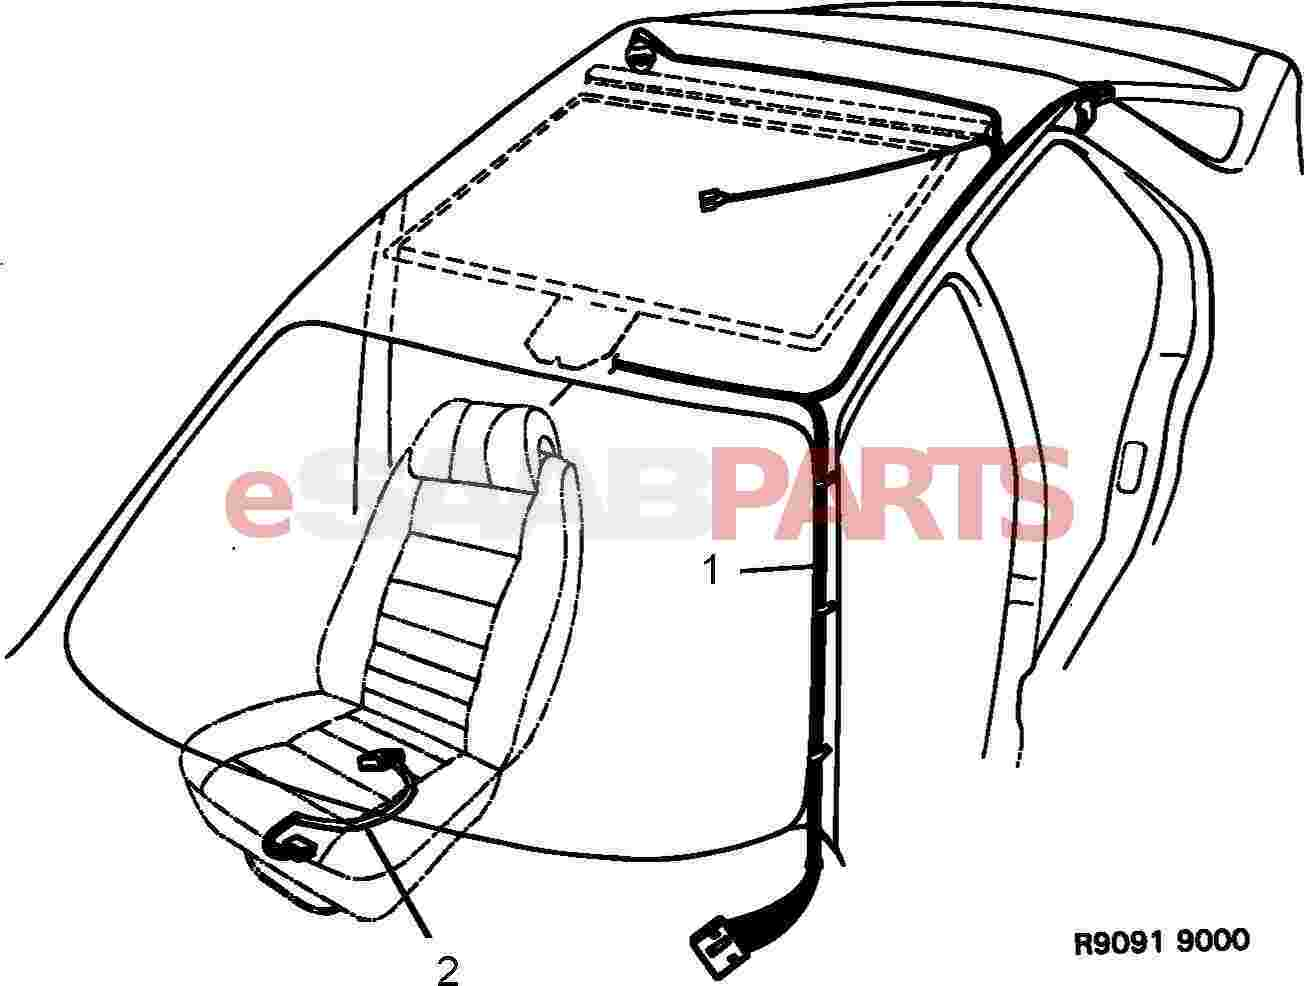 Saab 9000 Electrical Parts Wiring Harness Diagram Compartment